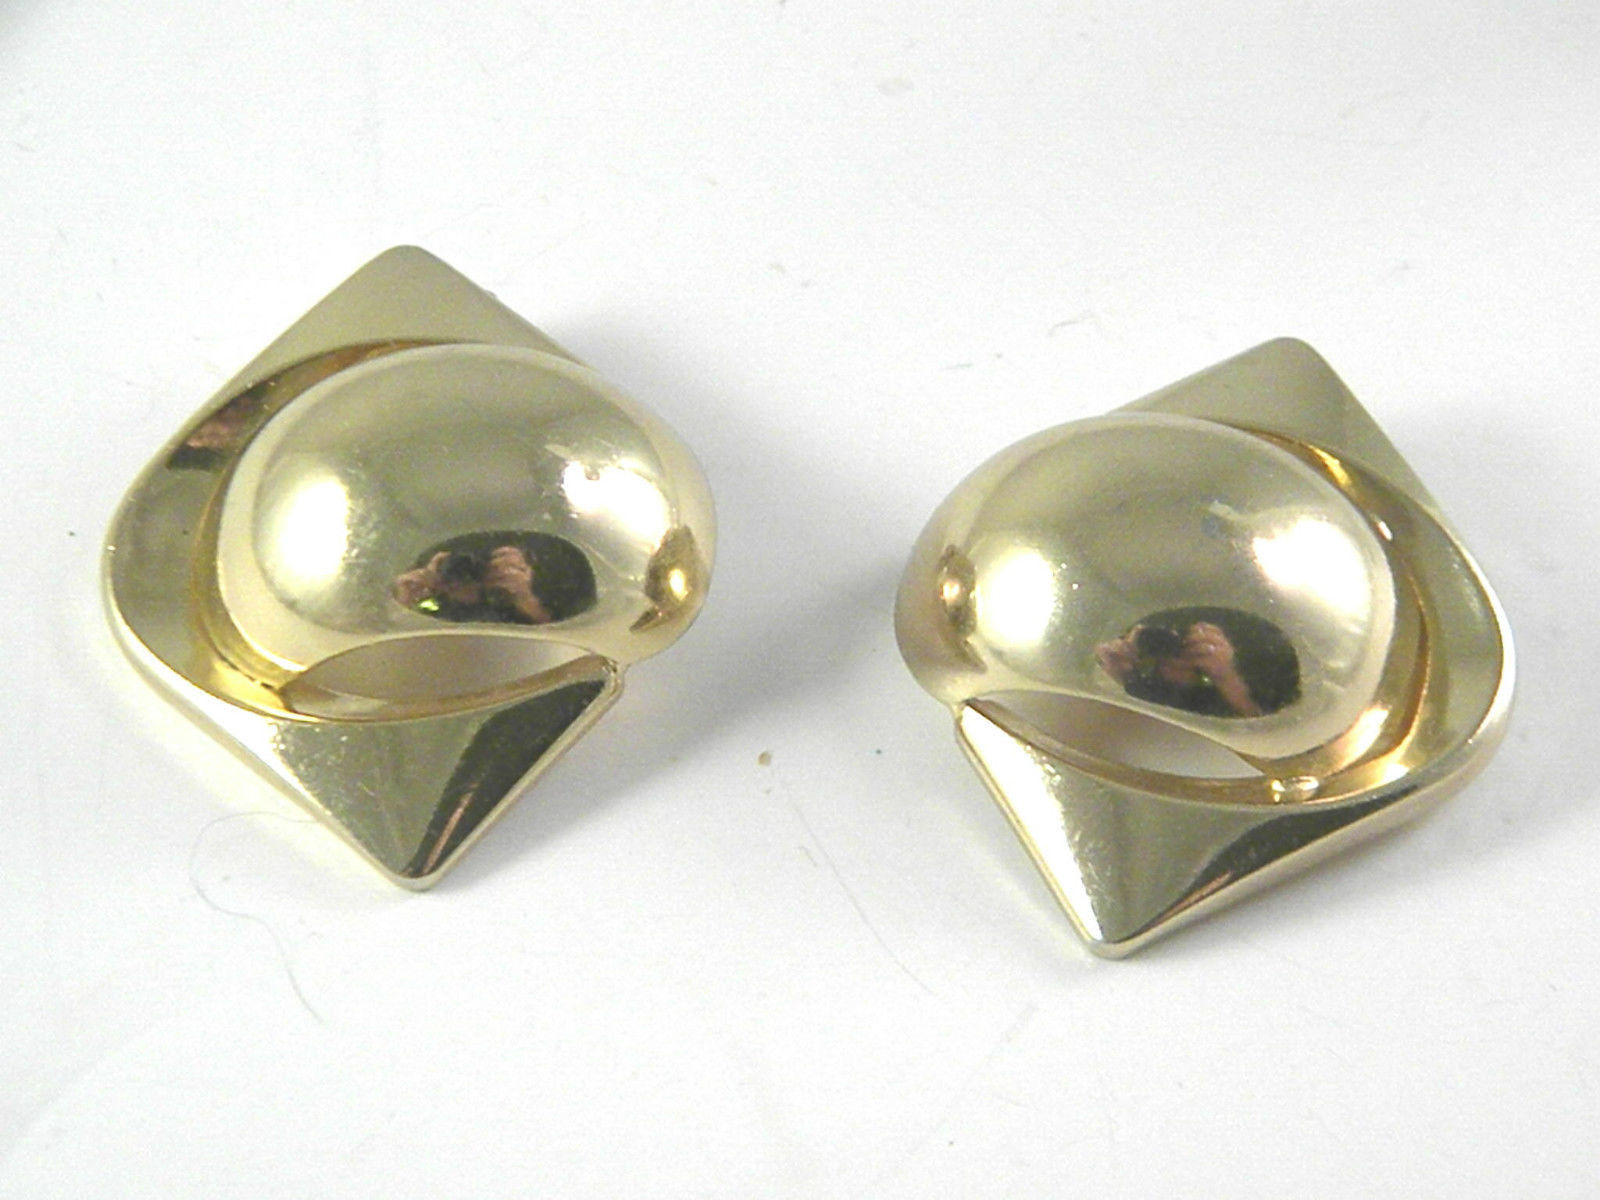 Grosse Germany 1972 Vintage gold tone Earrings